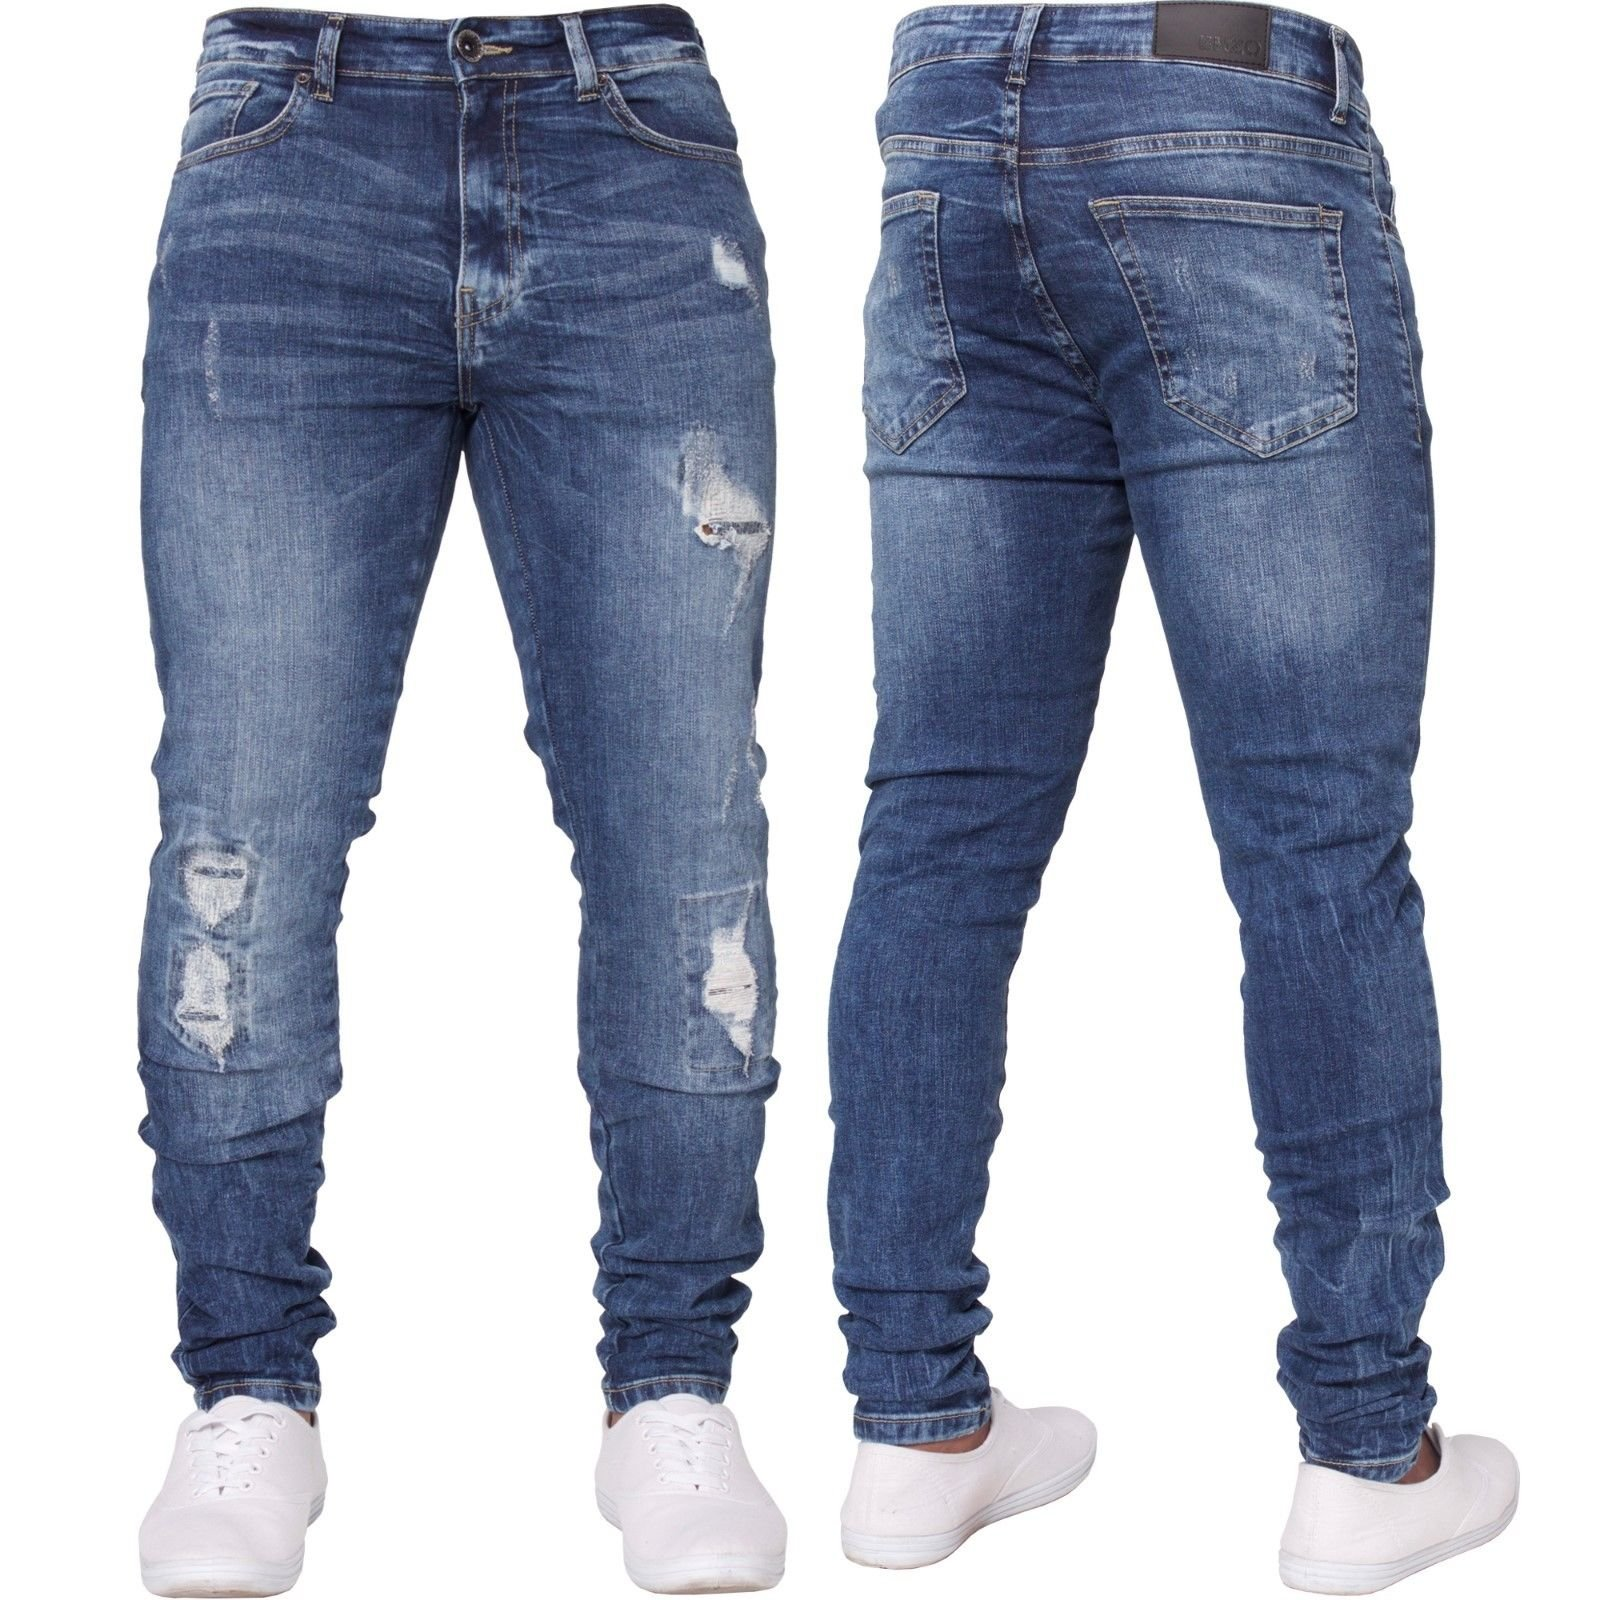 SySea Mens Ripped Long Skinny Slim Fit Jeans Comfy Stretch Fashion Biker Jean Pants With Holes